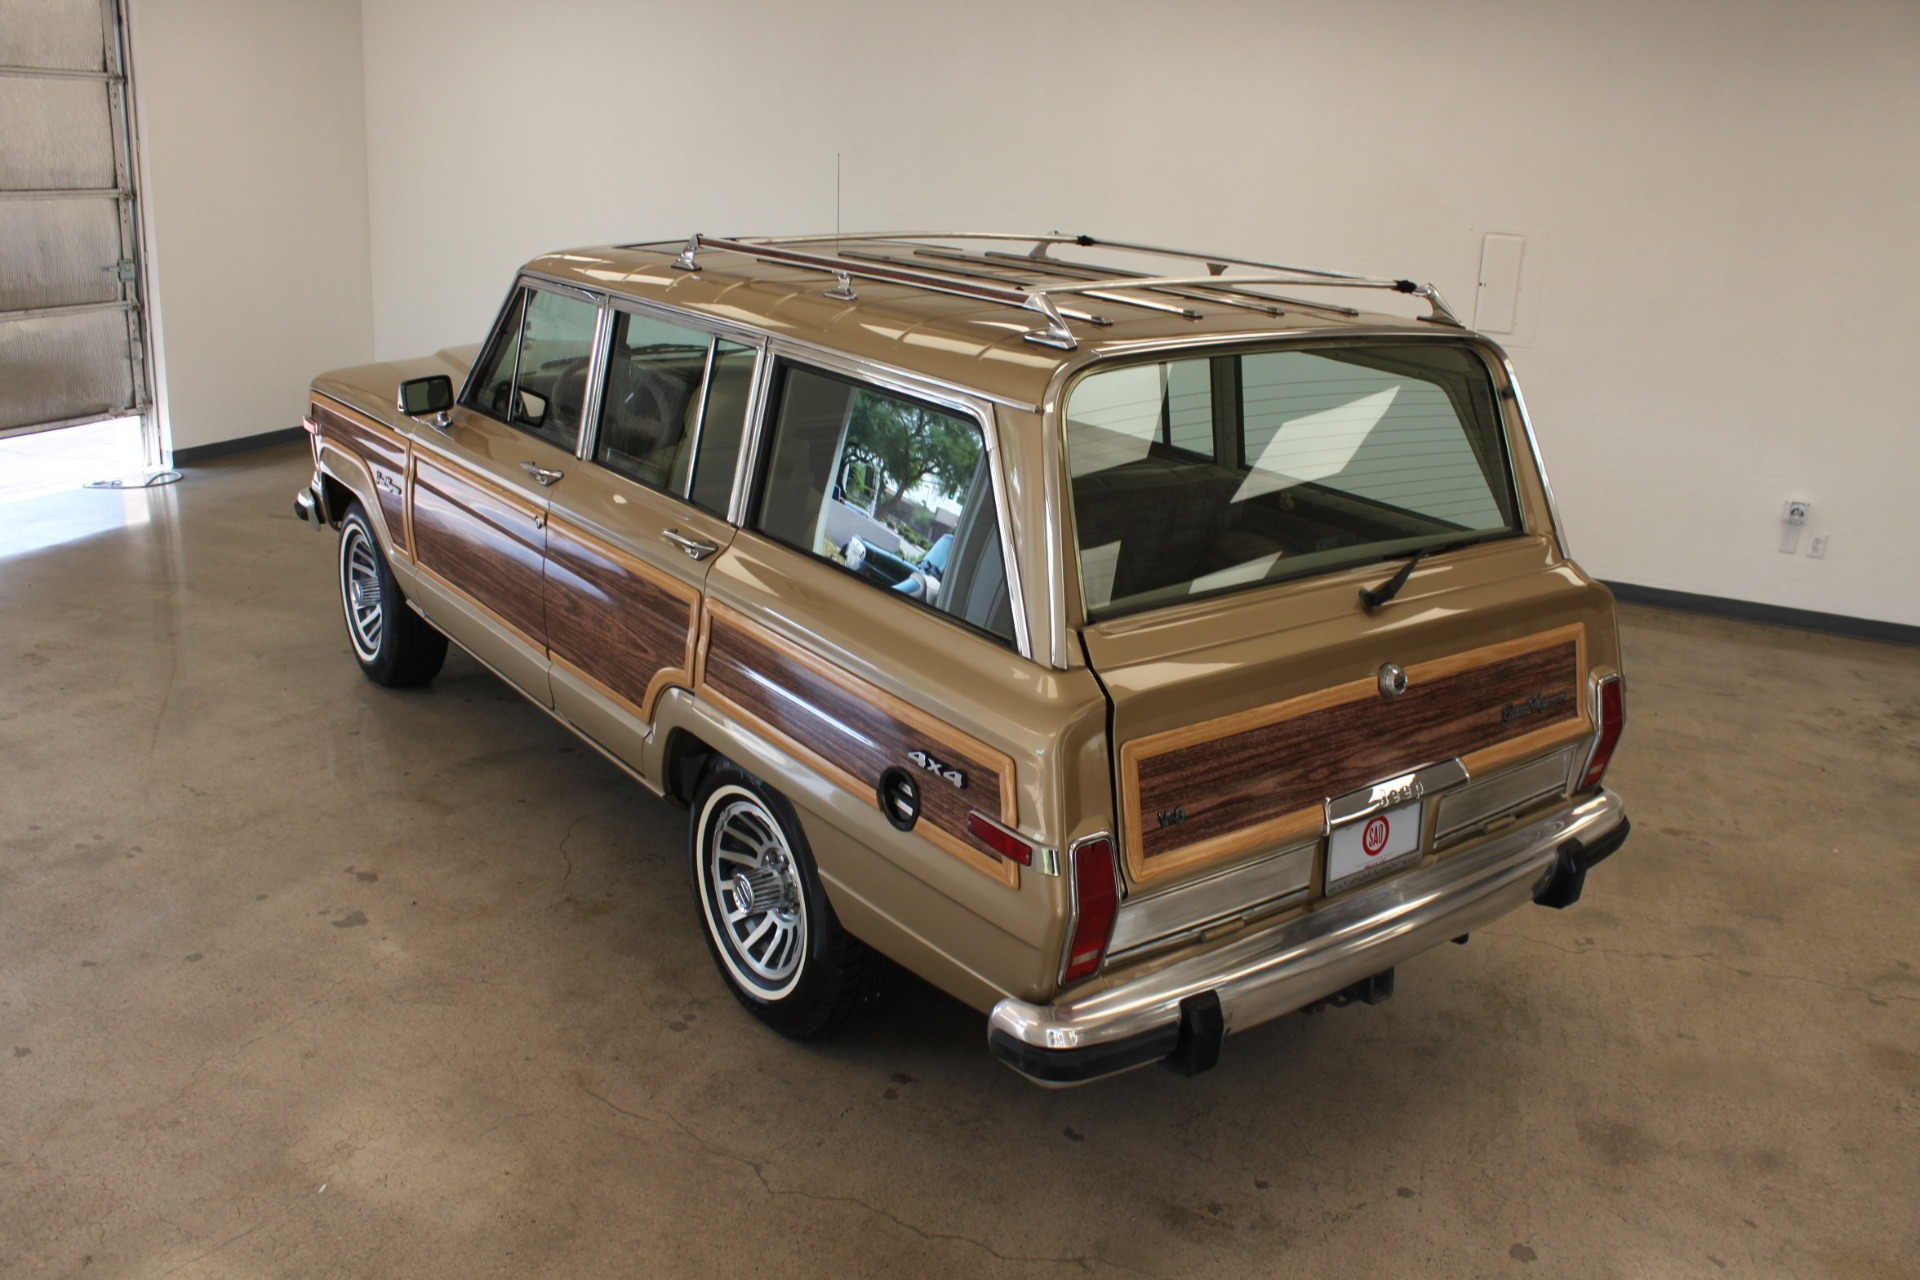 Used-1990-Jeep-Grand-Wagoneer-Chevelle